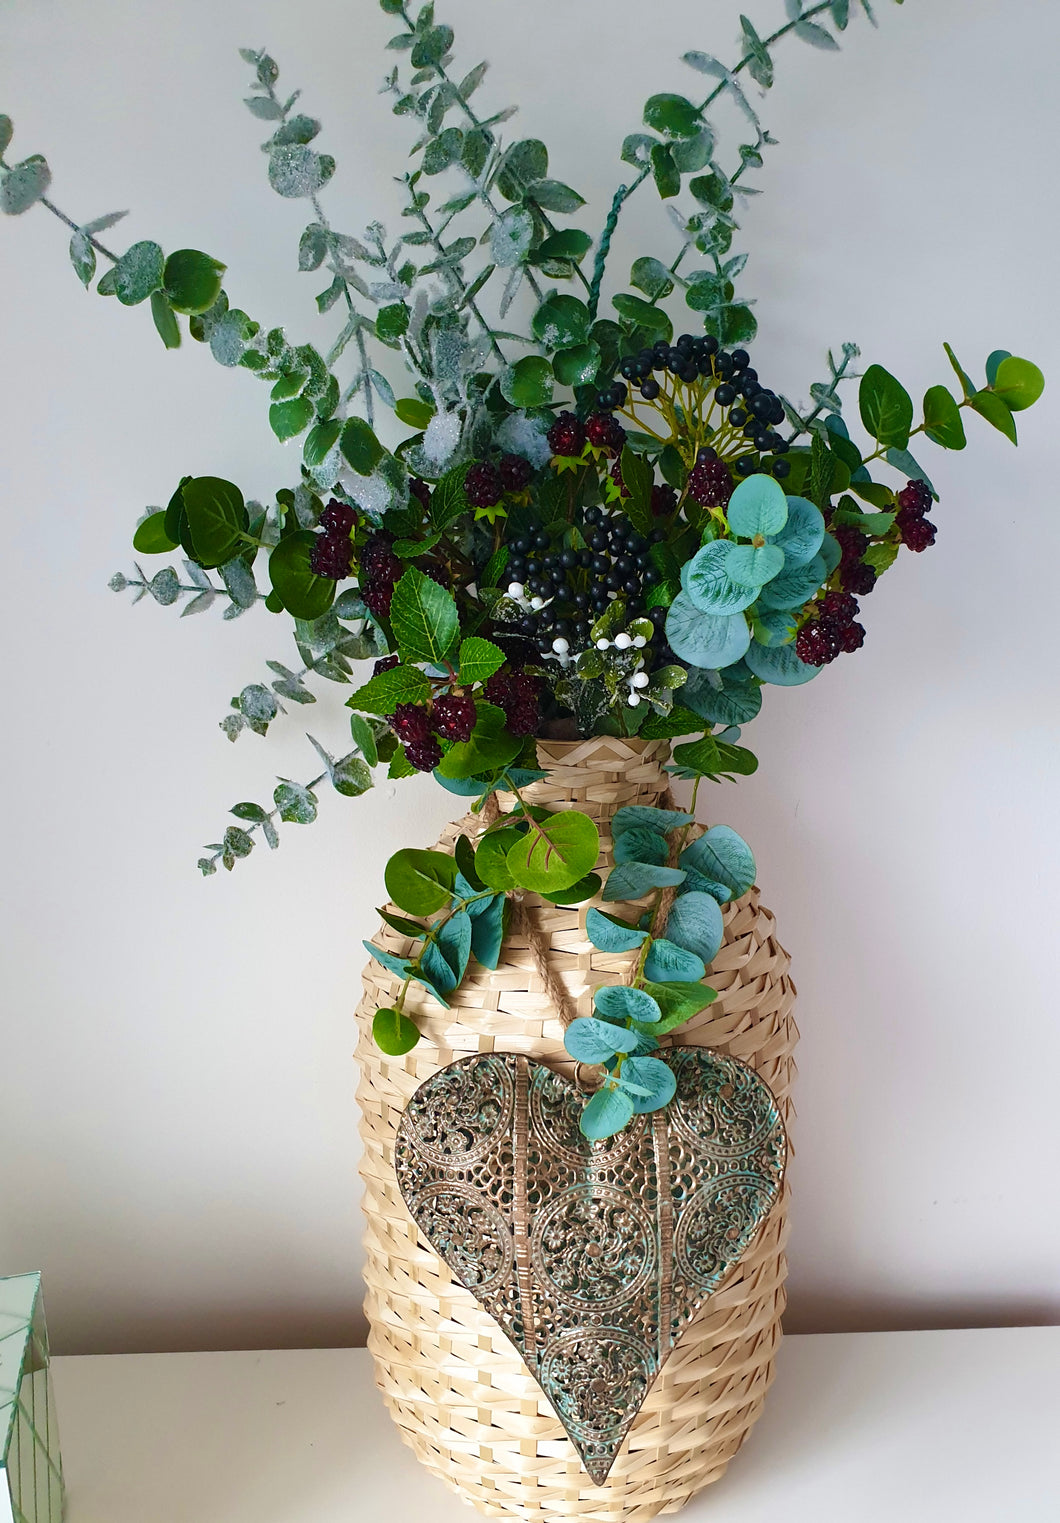 Large Wicker Vase Planter